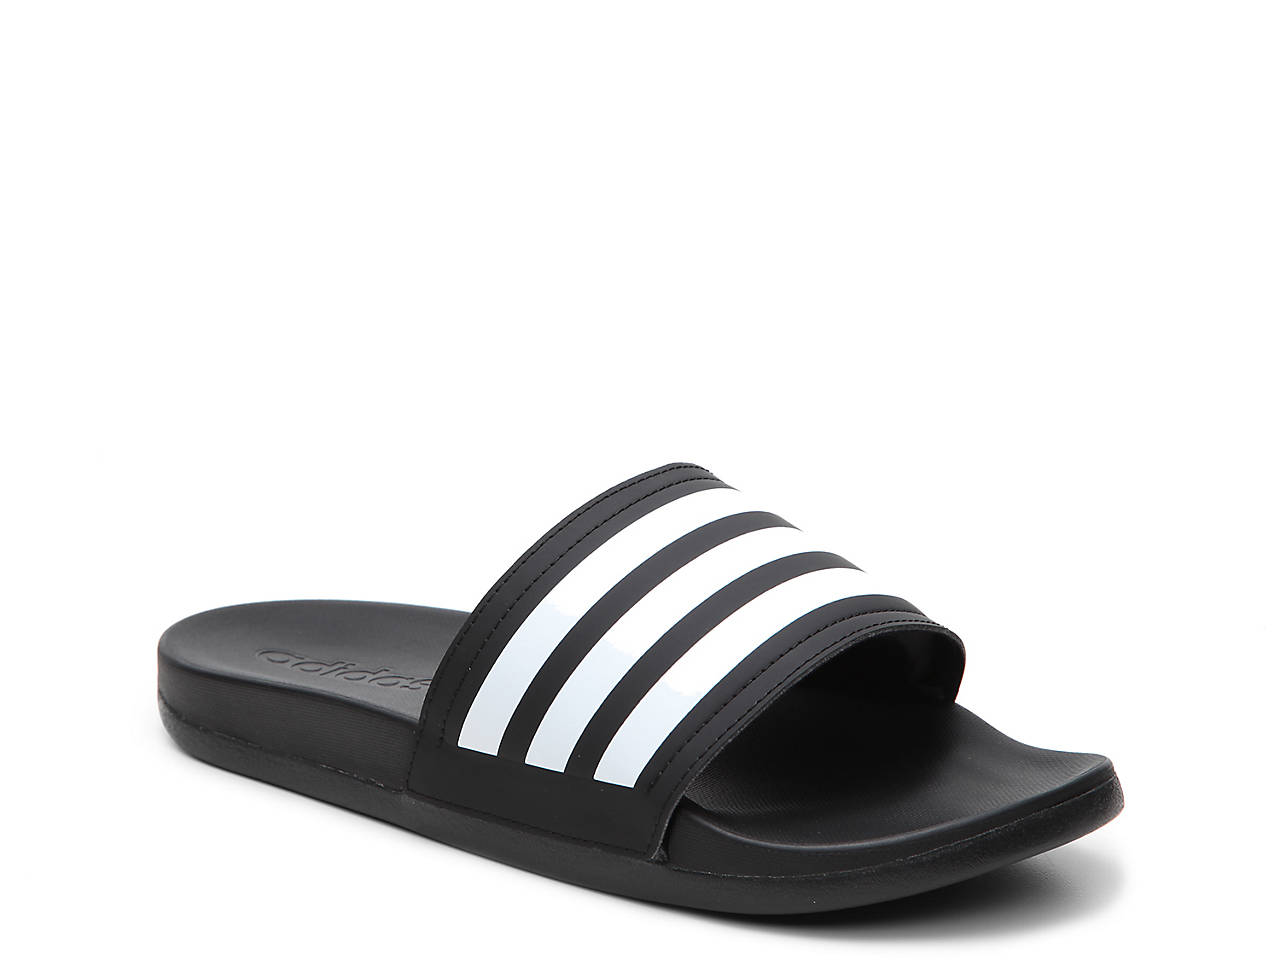 adidas Adilette Cloudfoam Ultra Stripes Slide Sandal - Women s ... 7f77e35e0